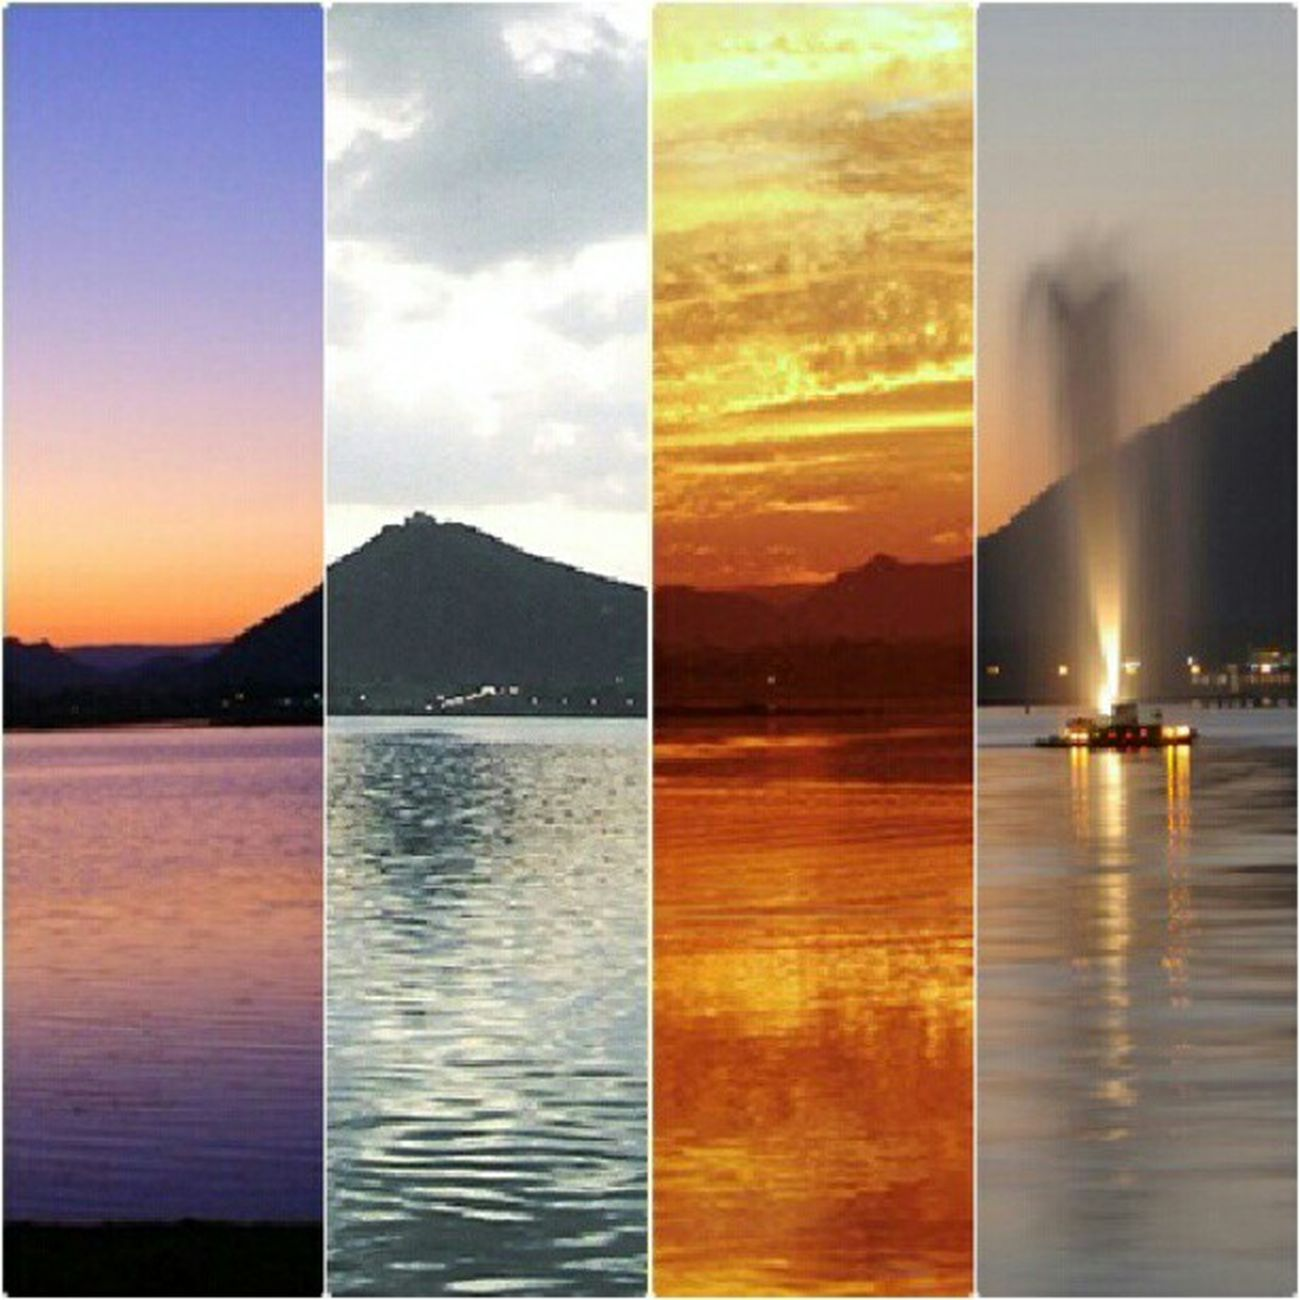 Four seasons... Fun Instagramers Tagsforlikes .COM @TagsForLikes Food smile followme pretty beach nature onedirection friends dog hair sunset throwbackthursday instagood swag blue statigram hot funny life art instahub photo lol cool pink bestoftheday clouds